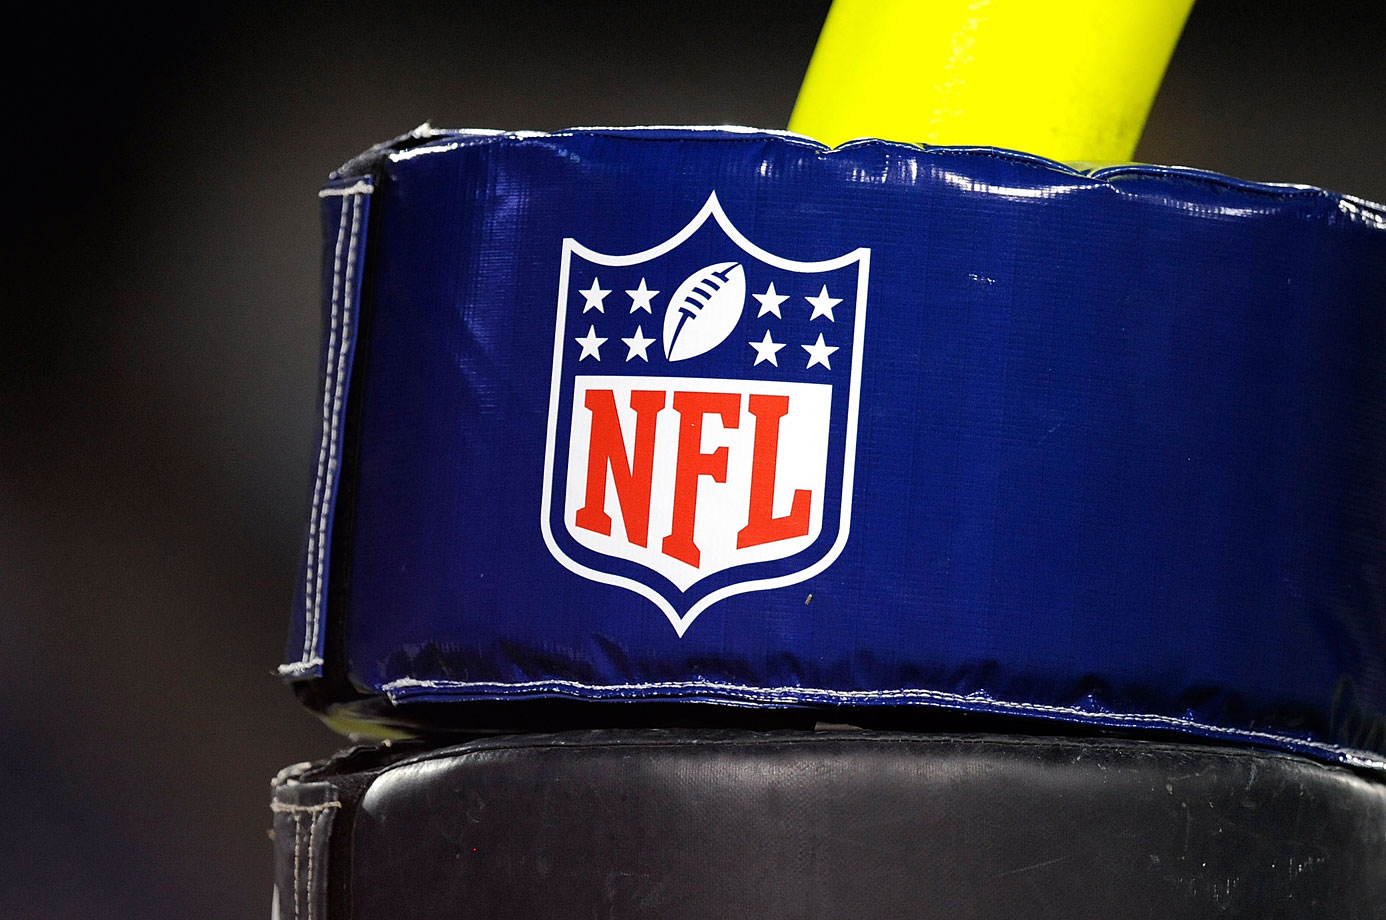 A padded doughnut covers part of an NFL goal post during a preseason game between the Tennessee Titans and St. Louis Rams at LP Field on Aug. 9, 2008 in Nashville.